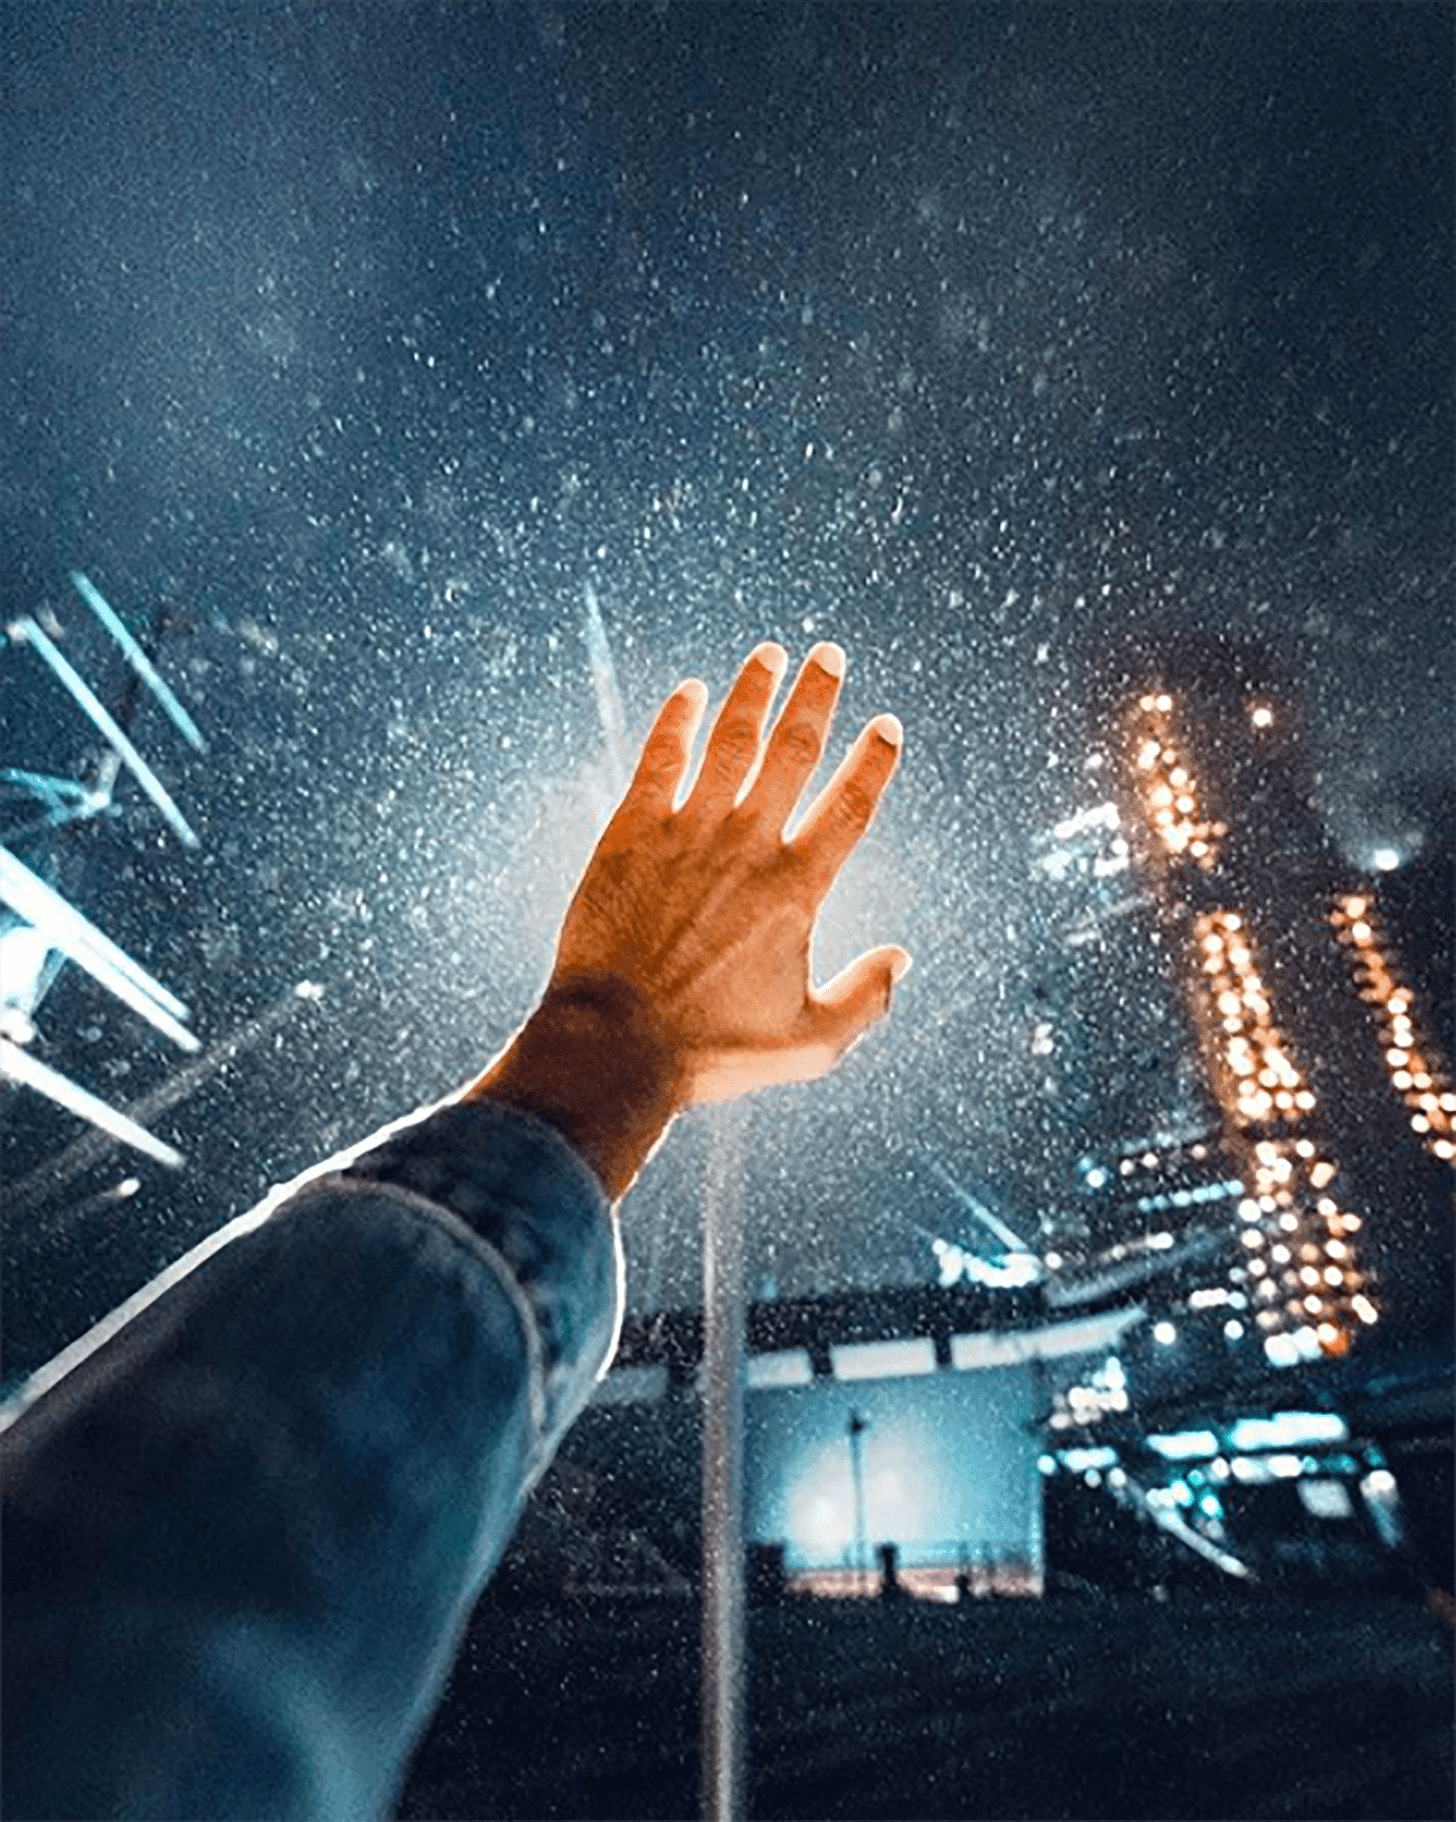 A hand rising up against the falling rain by Ravi Vora